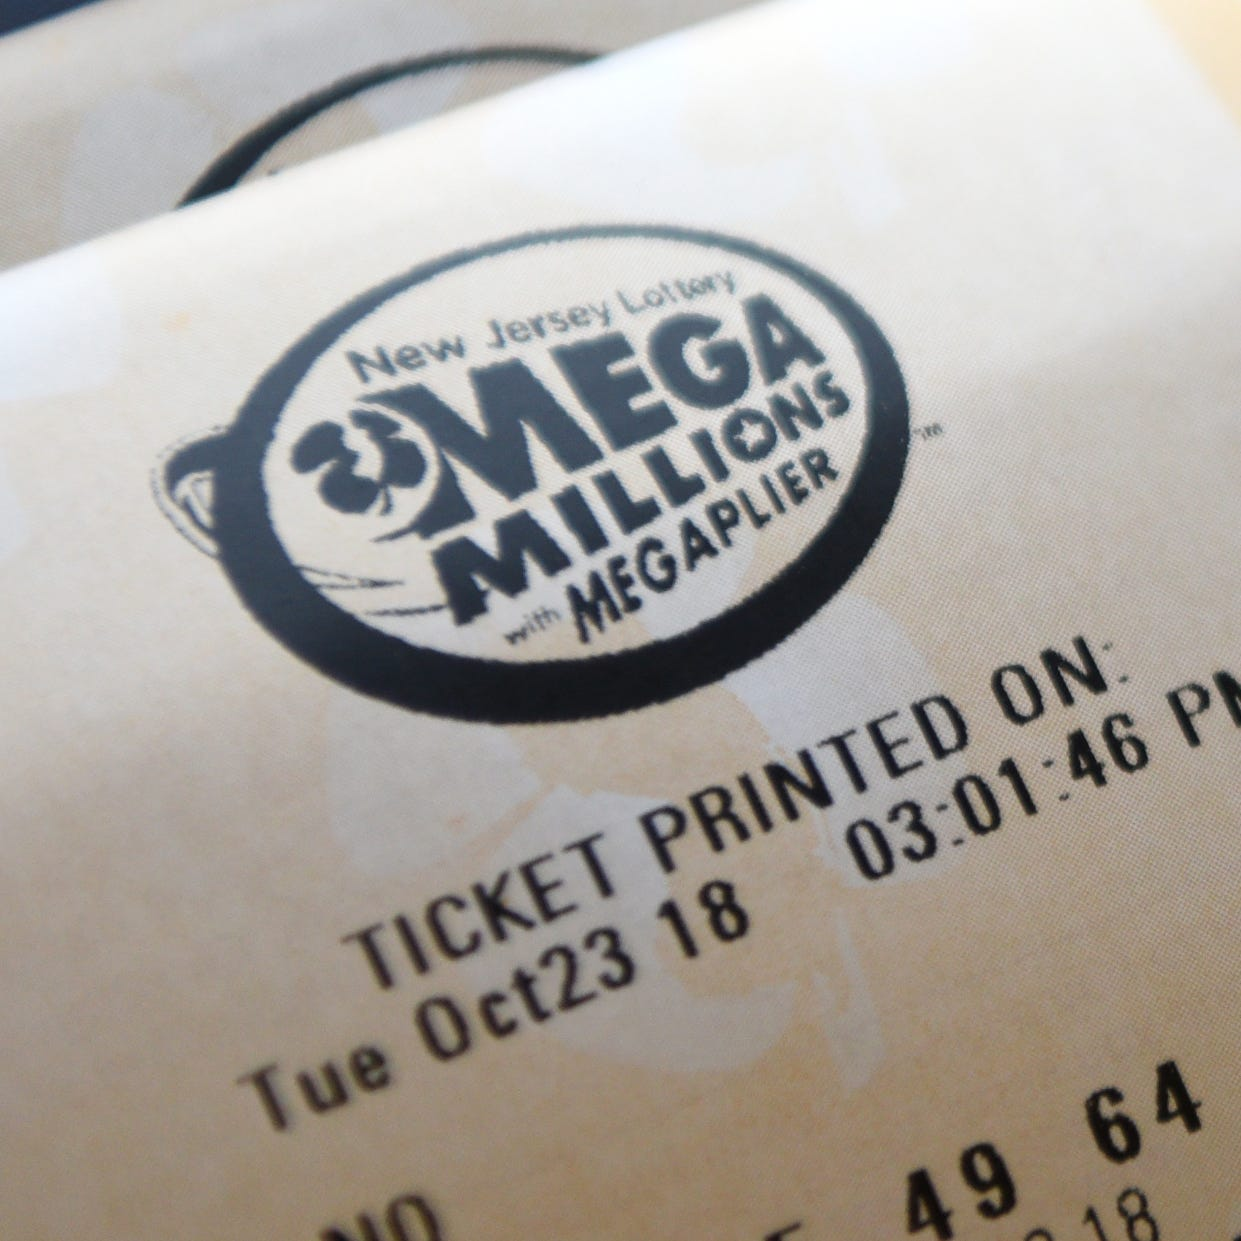 Check winning Mega Millions numbers for Friday, March 29